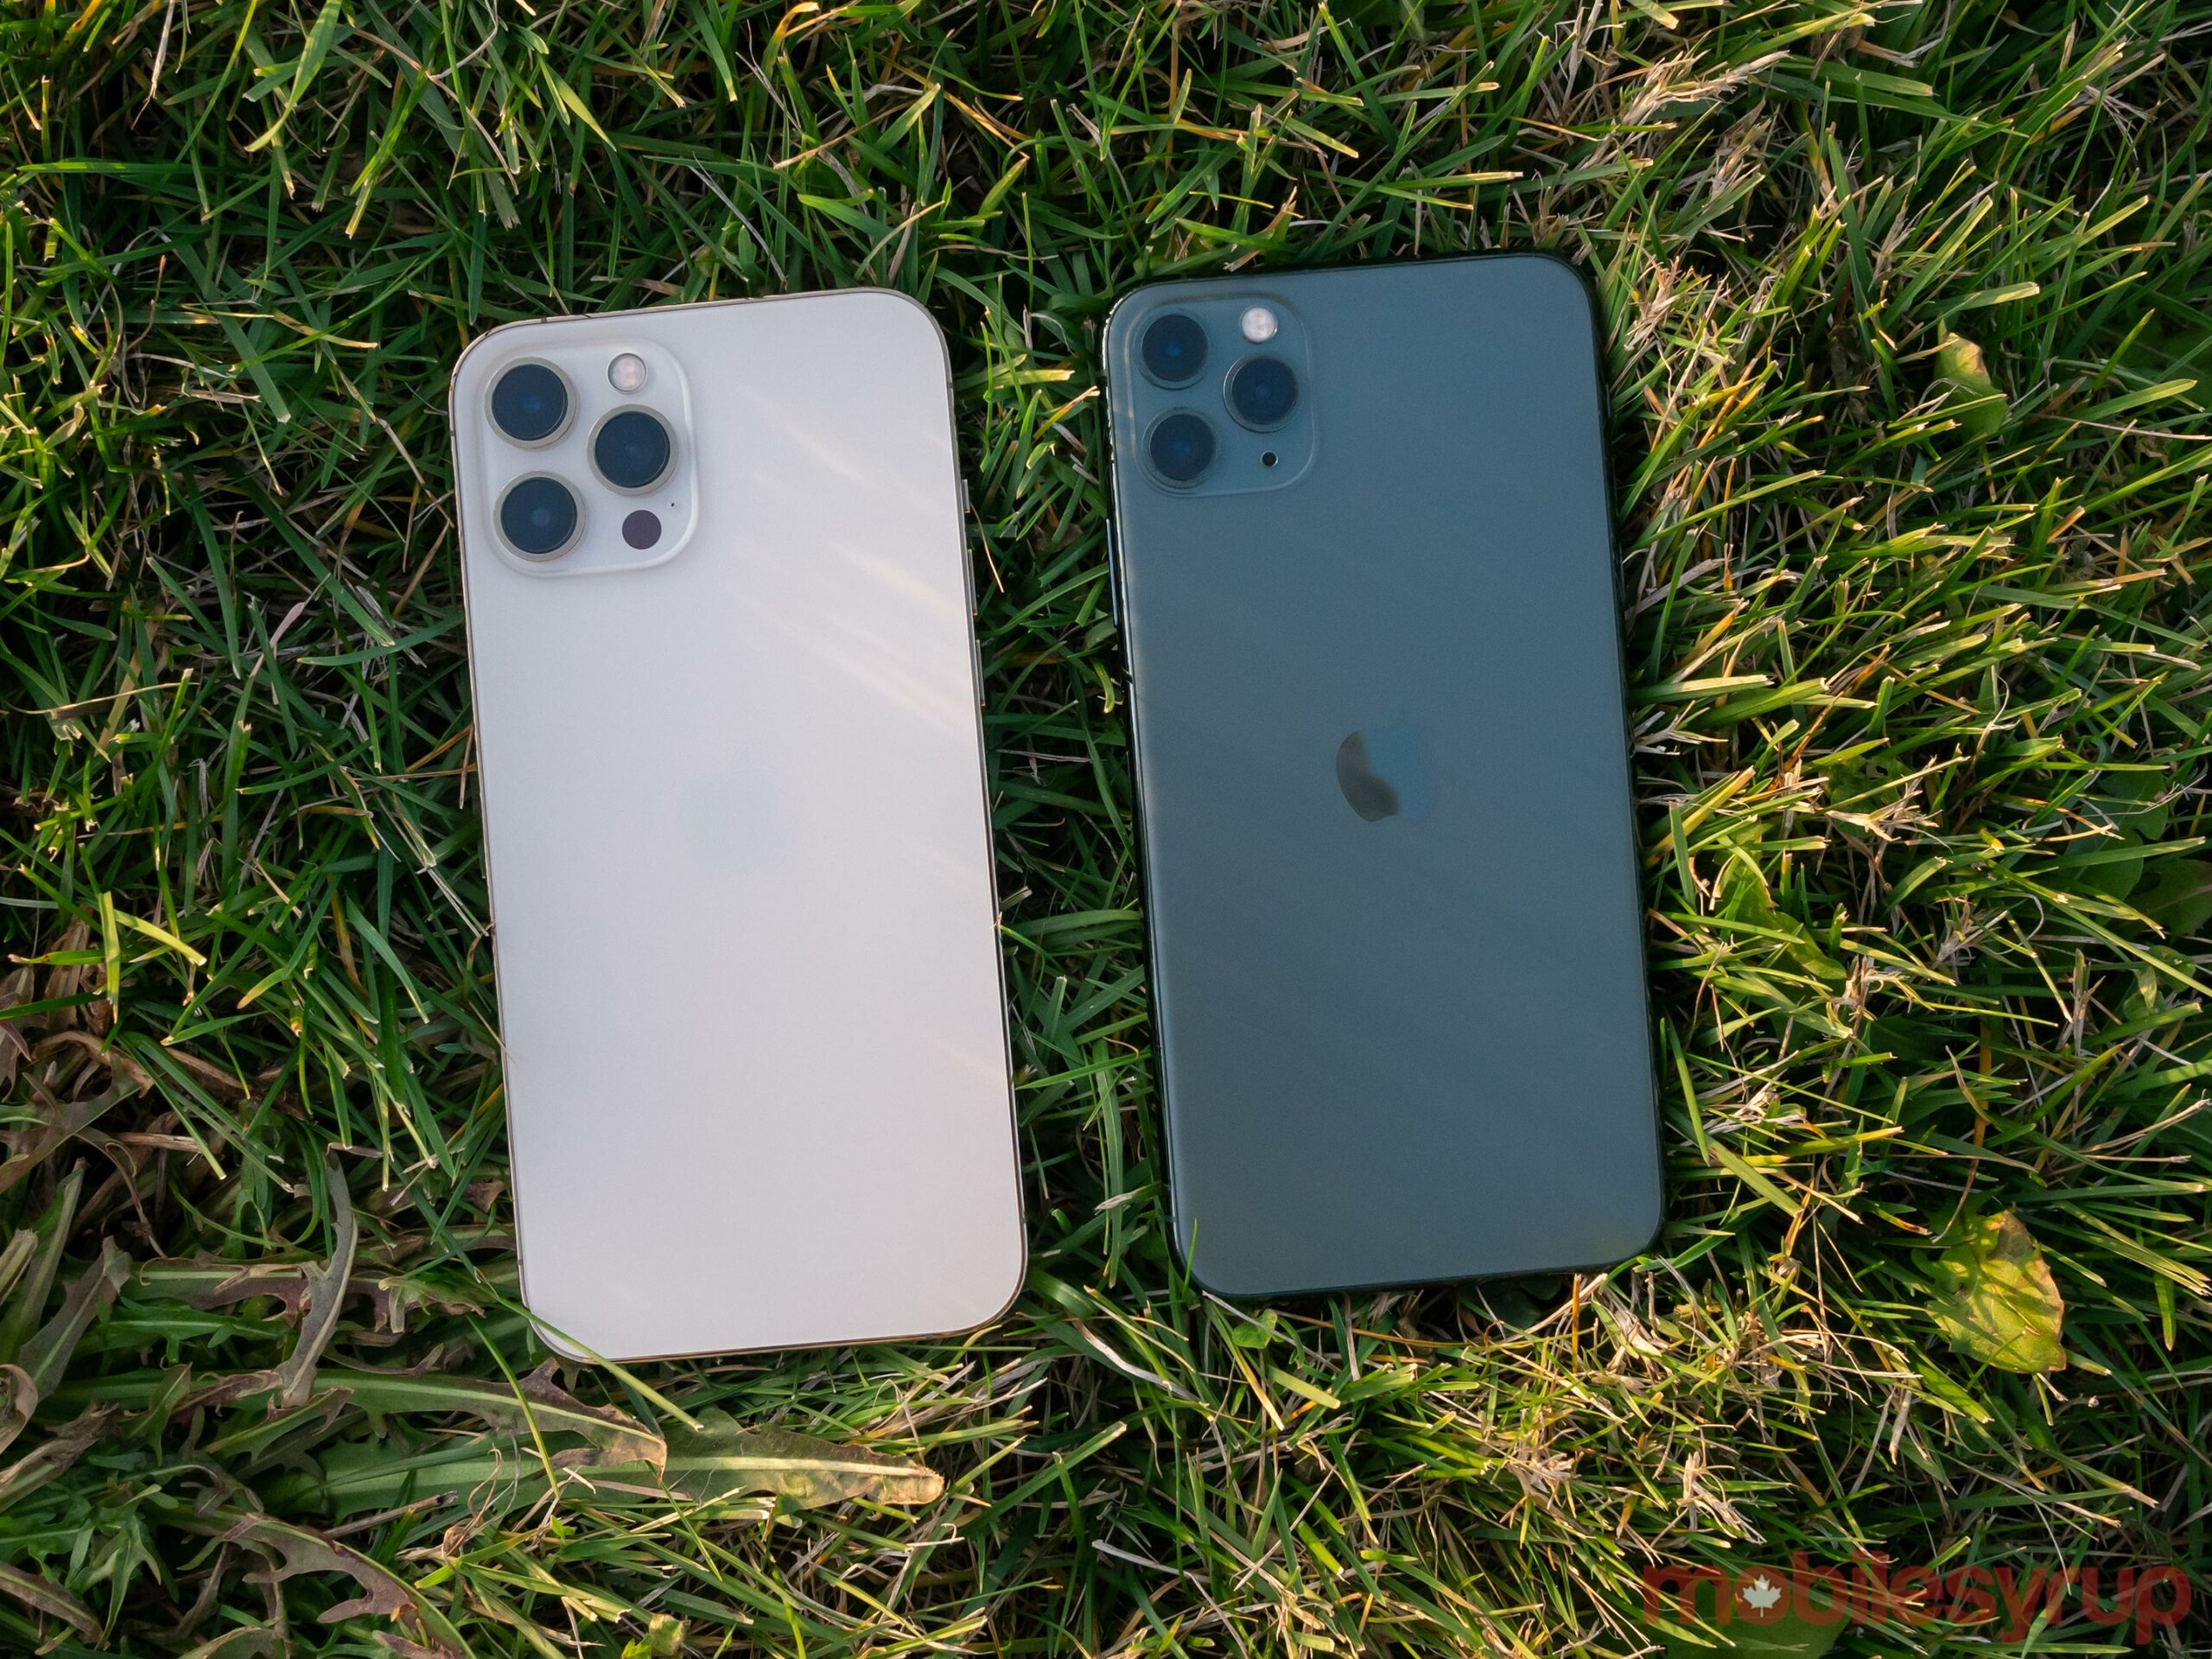 iPhone 12 Pro Max vs the iPhone 11 Pro Max